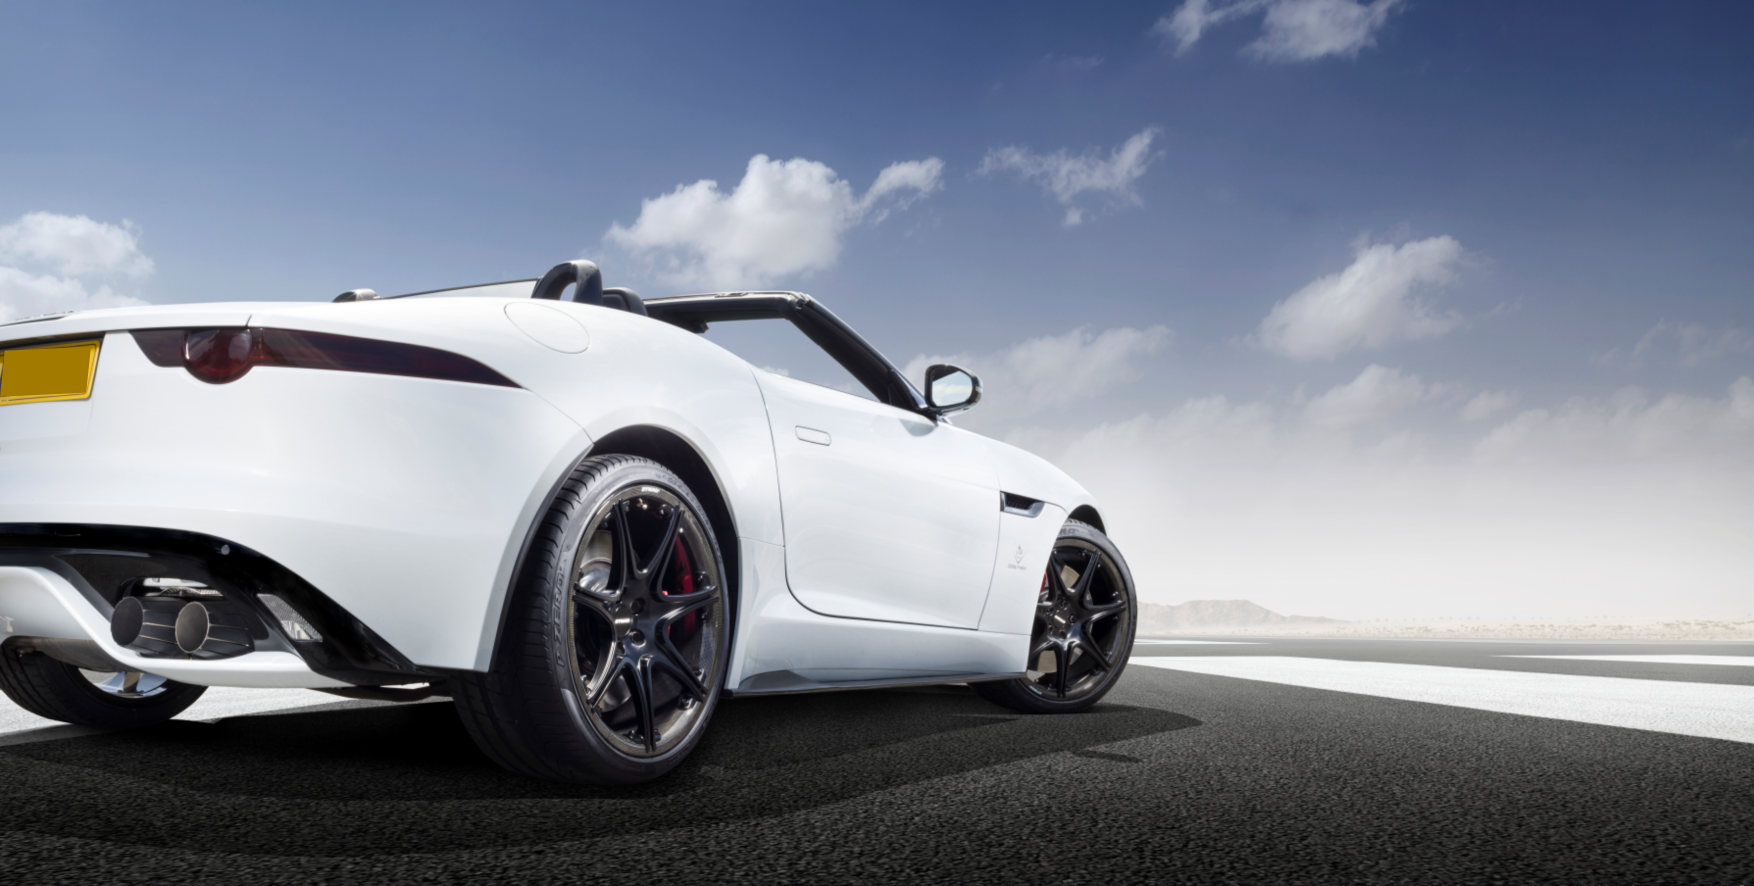 jaguar f type v8 tuning and performance 50bhp in a flash. Black Bedroom Furniture Sets. Home Design Ideas